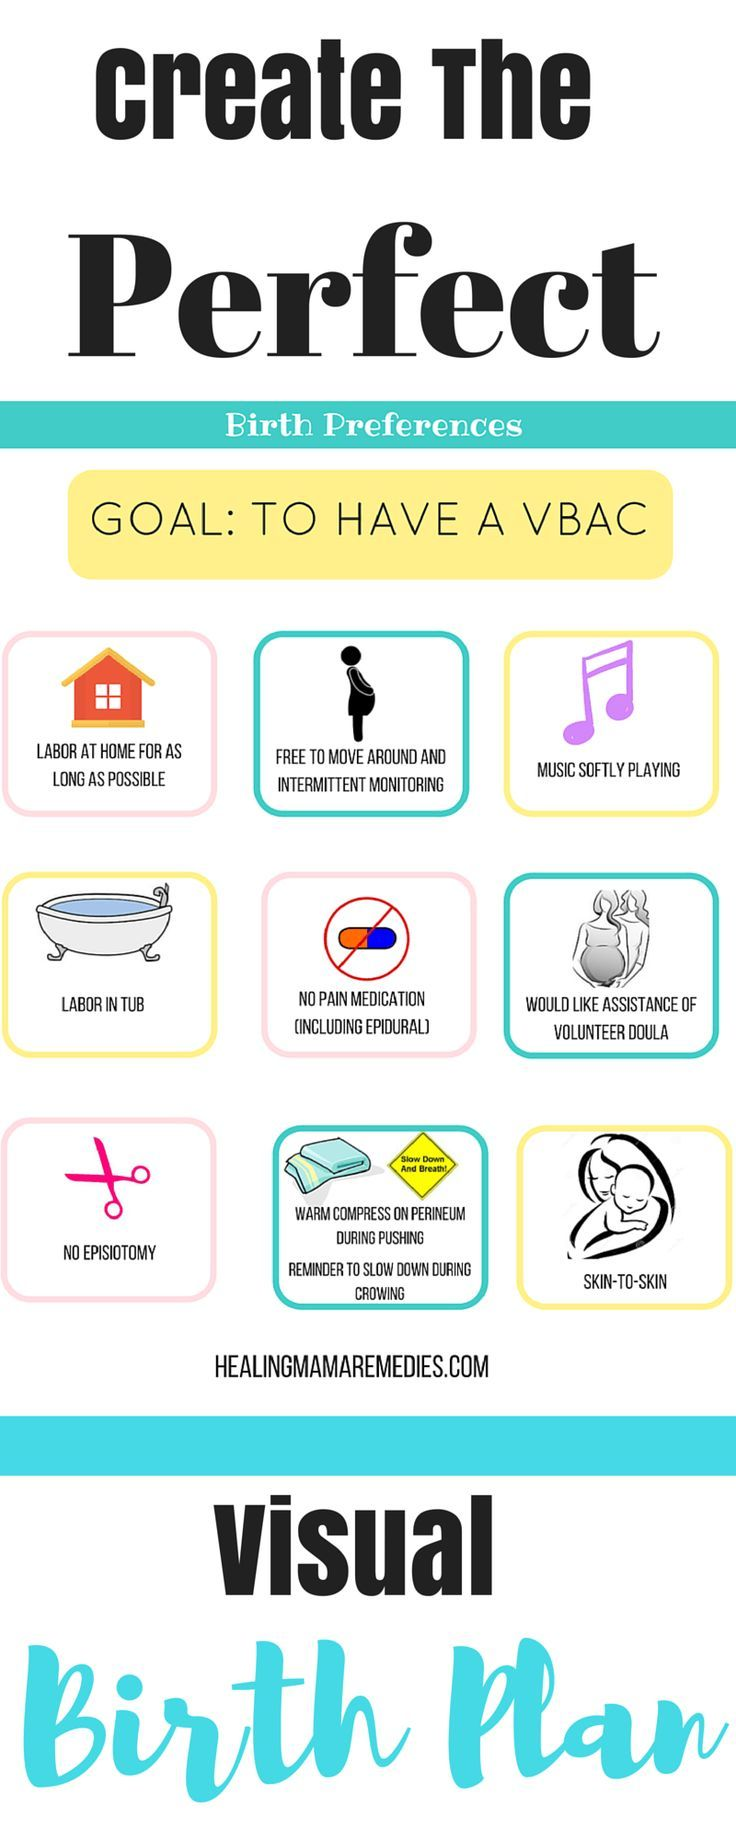 25 best ideas about birth plans on pinterest birthing plan birth plan printable and labor bag. Black Bedroom Furniture Sets. Home Design Ideas